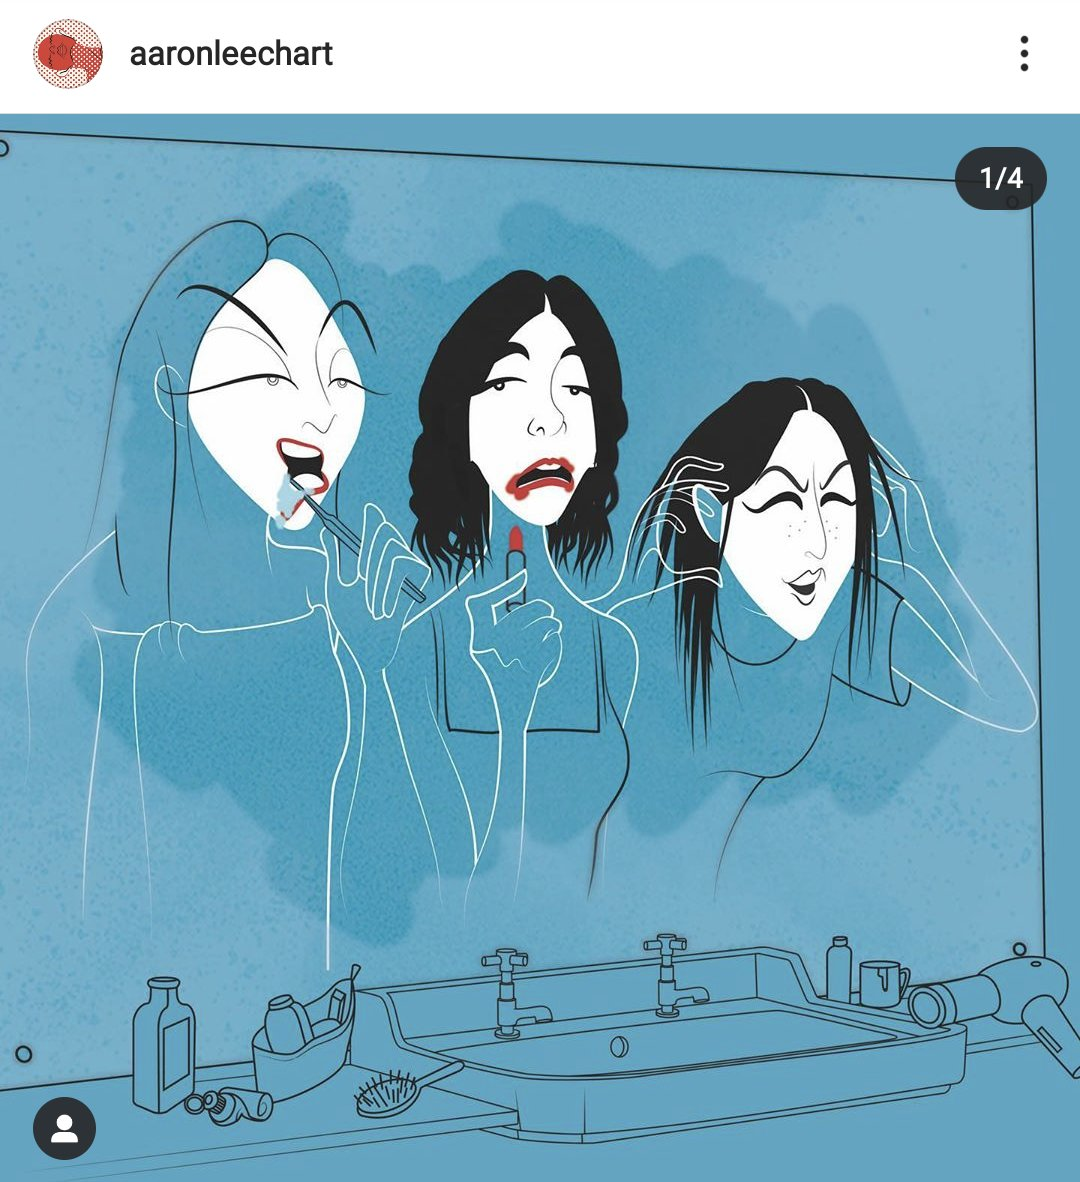 Every time I look at this it makes me smile. @HAIMtheband @aaronleechART